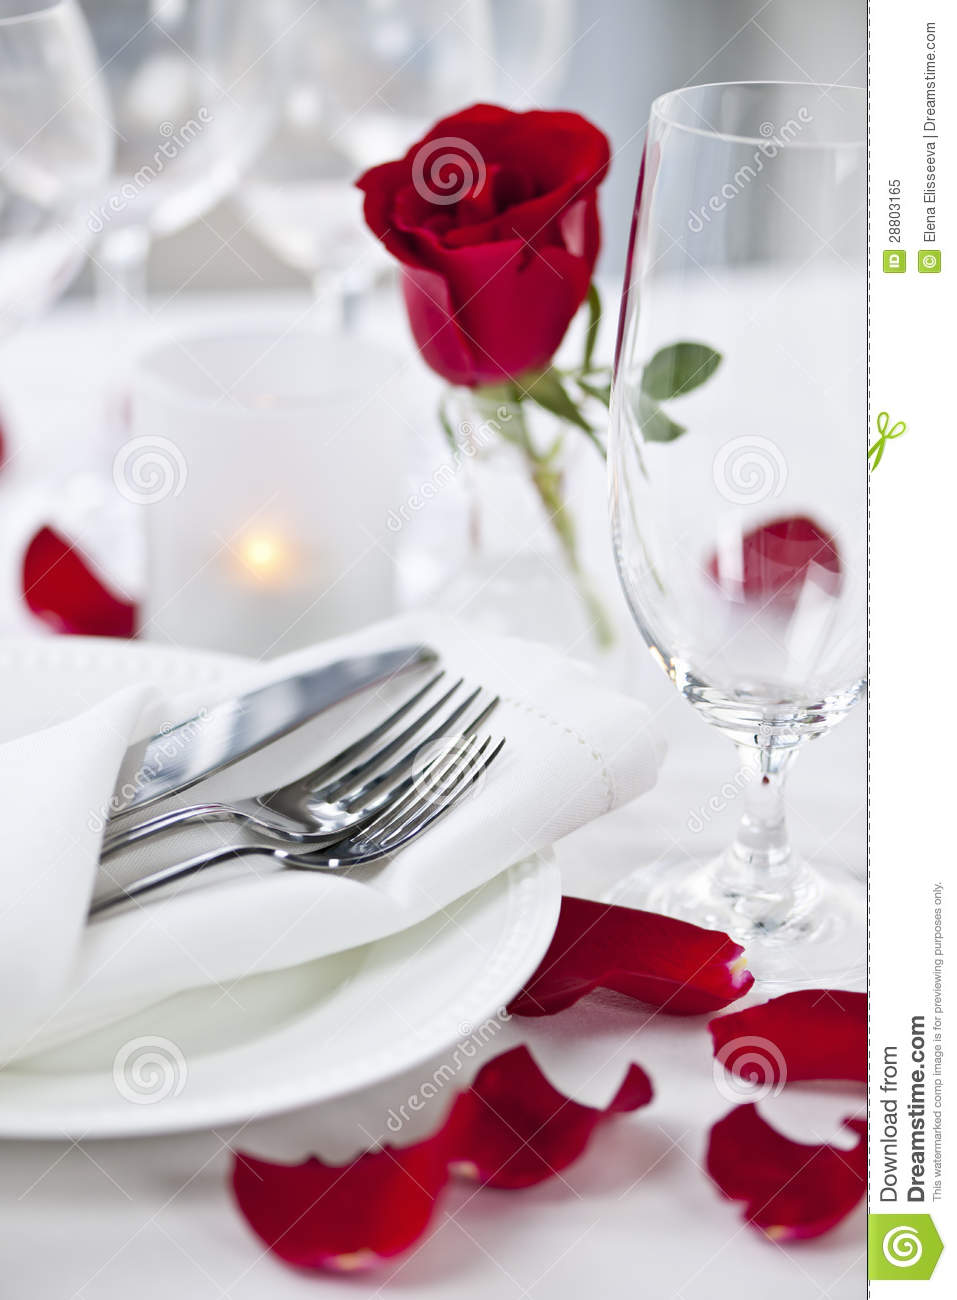 Romantic Dinner Setting With Rose Petals Royalty Free Stock Photo  Image 28803165